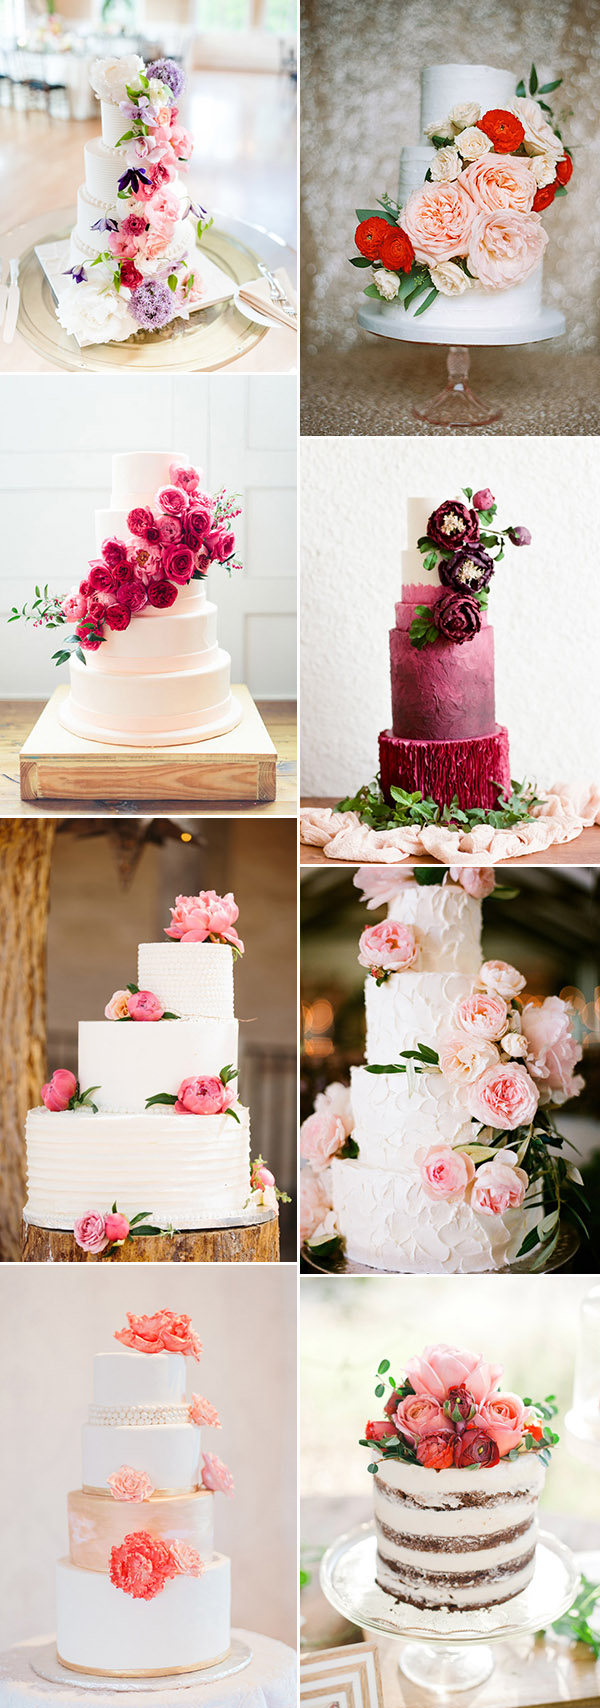 fabulous wedding cakes with floral decorated on for wedding ideas 2015 2016